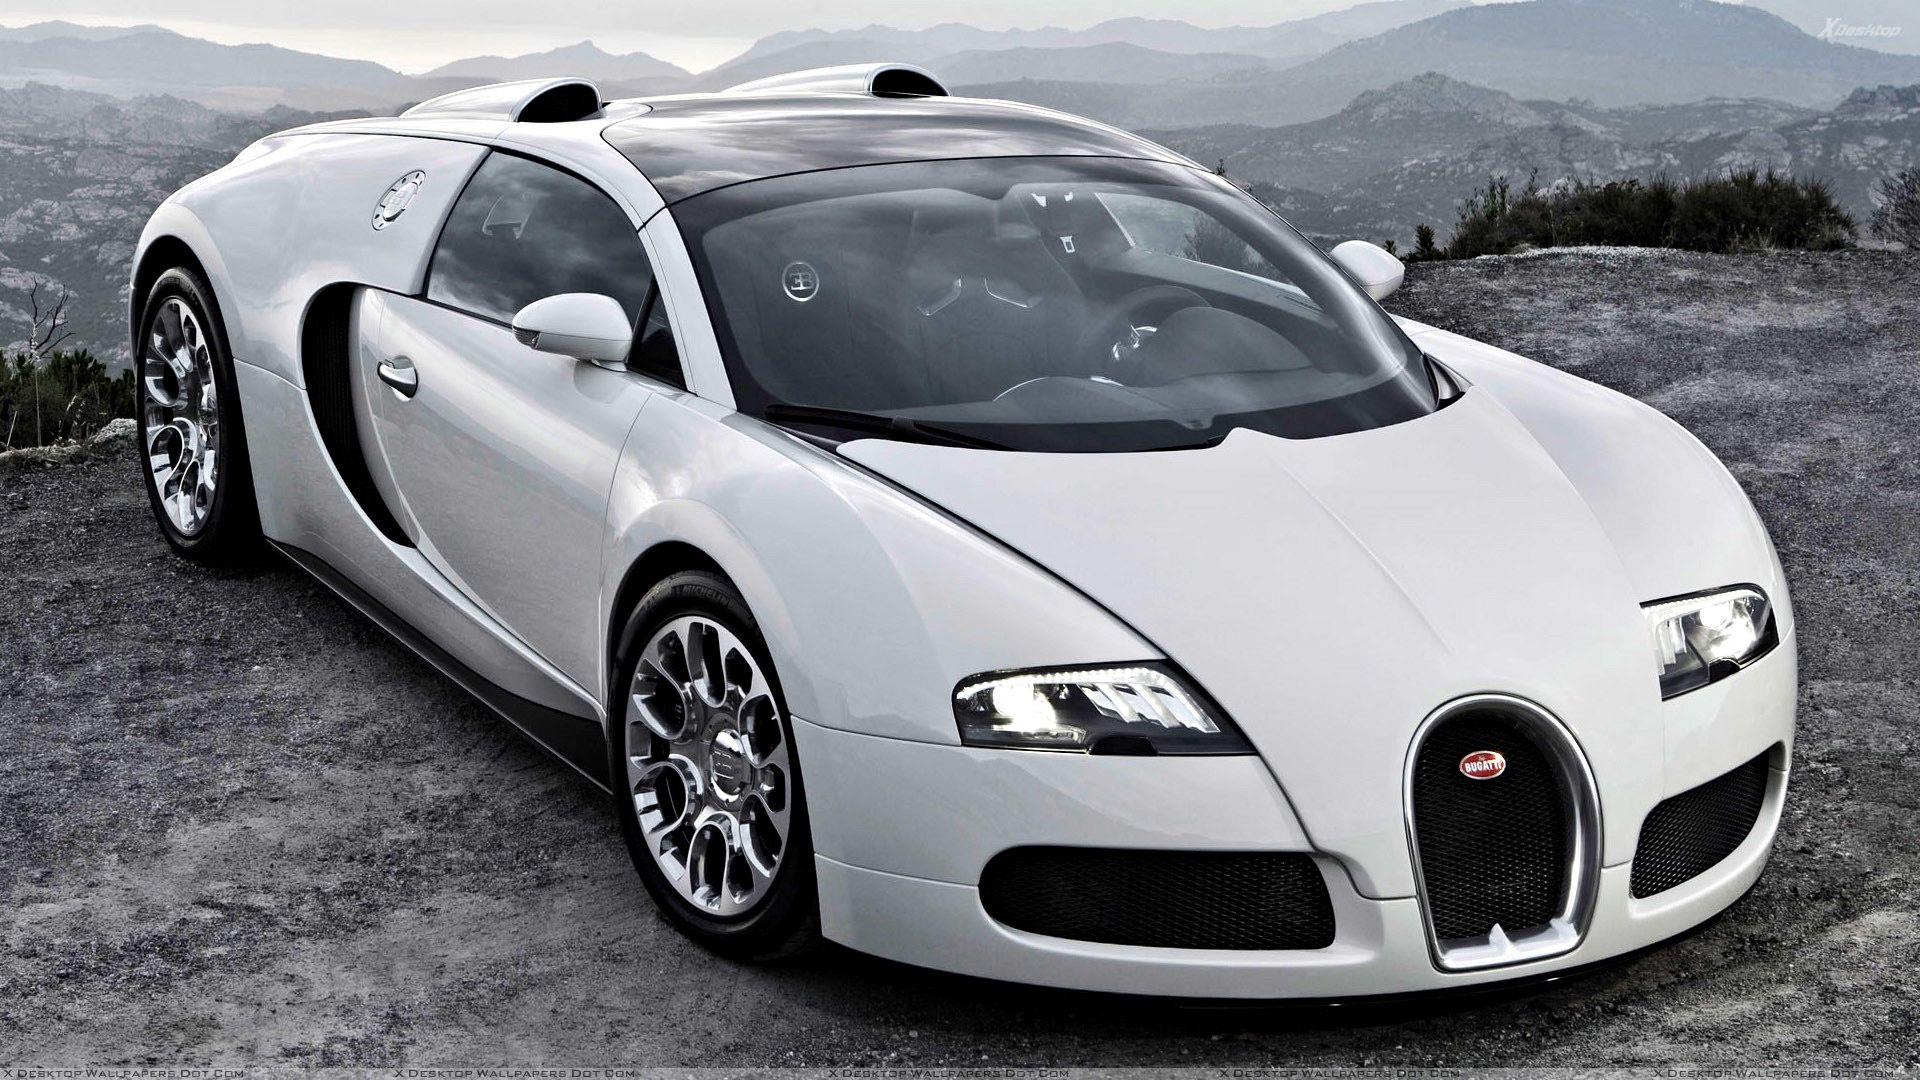 e0a2ab79c4869e6bb92bb37a104734c7 Amazing Price Of Bugatti Veyron 16.4 Grand Sport Vitesse In Real Racing 3 Cars Trend